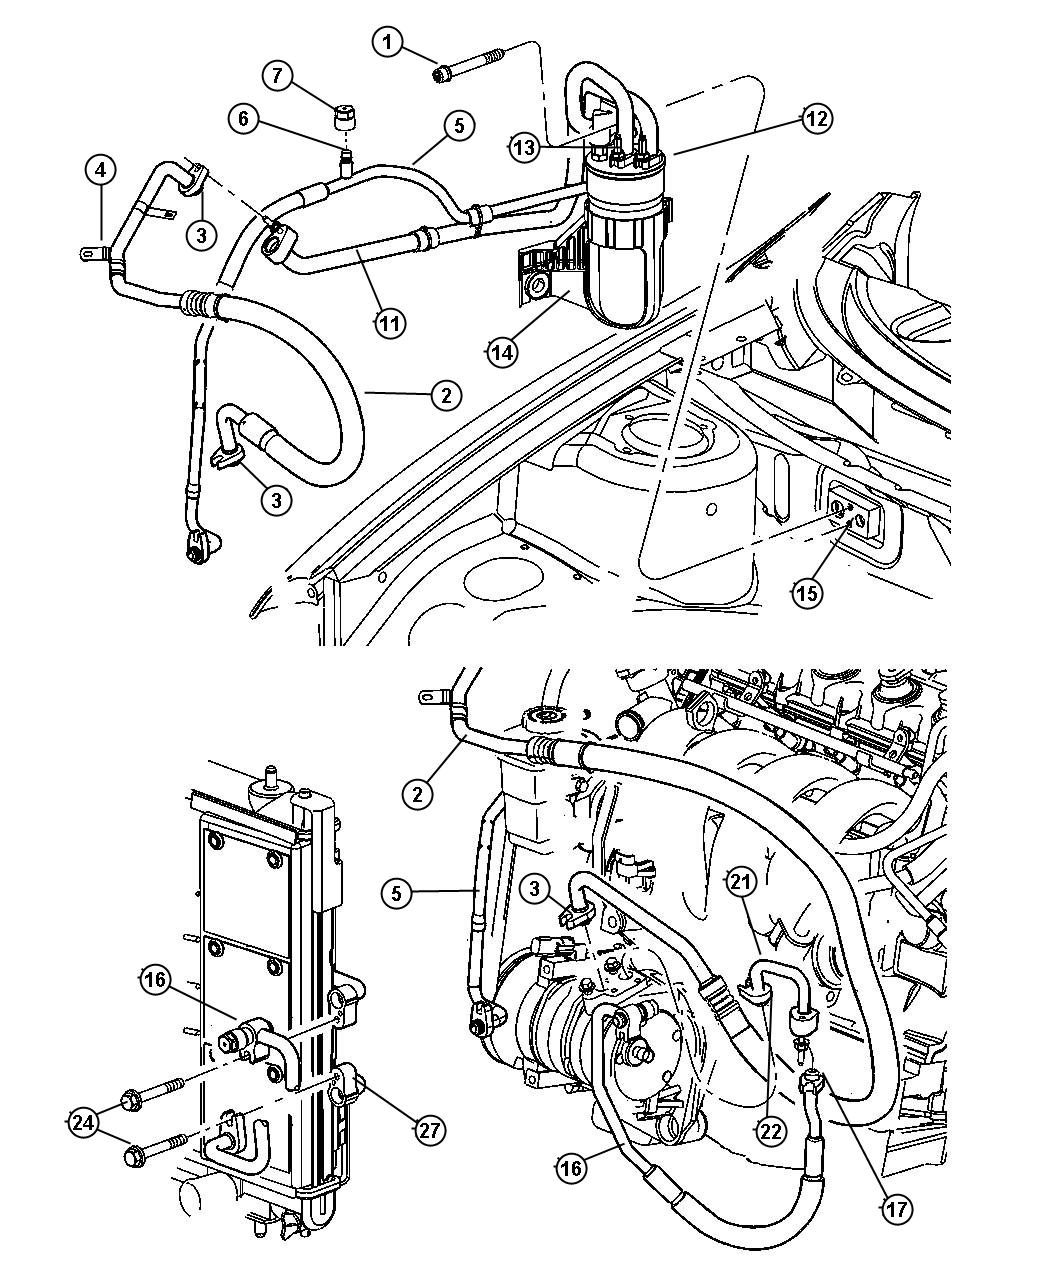 Vehicle 2005 Dodge Neon Engine Diagram